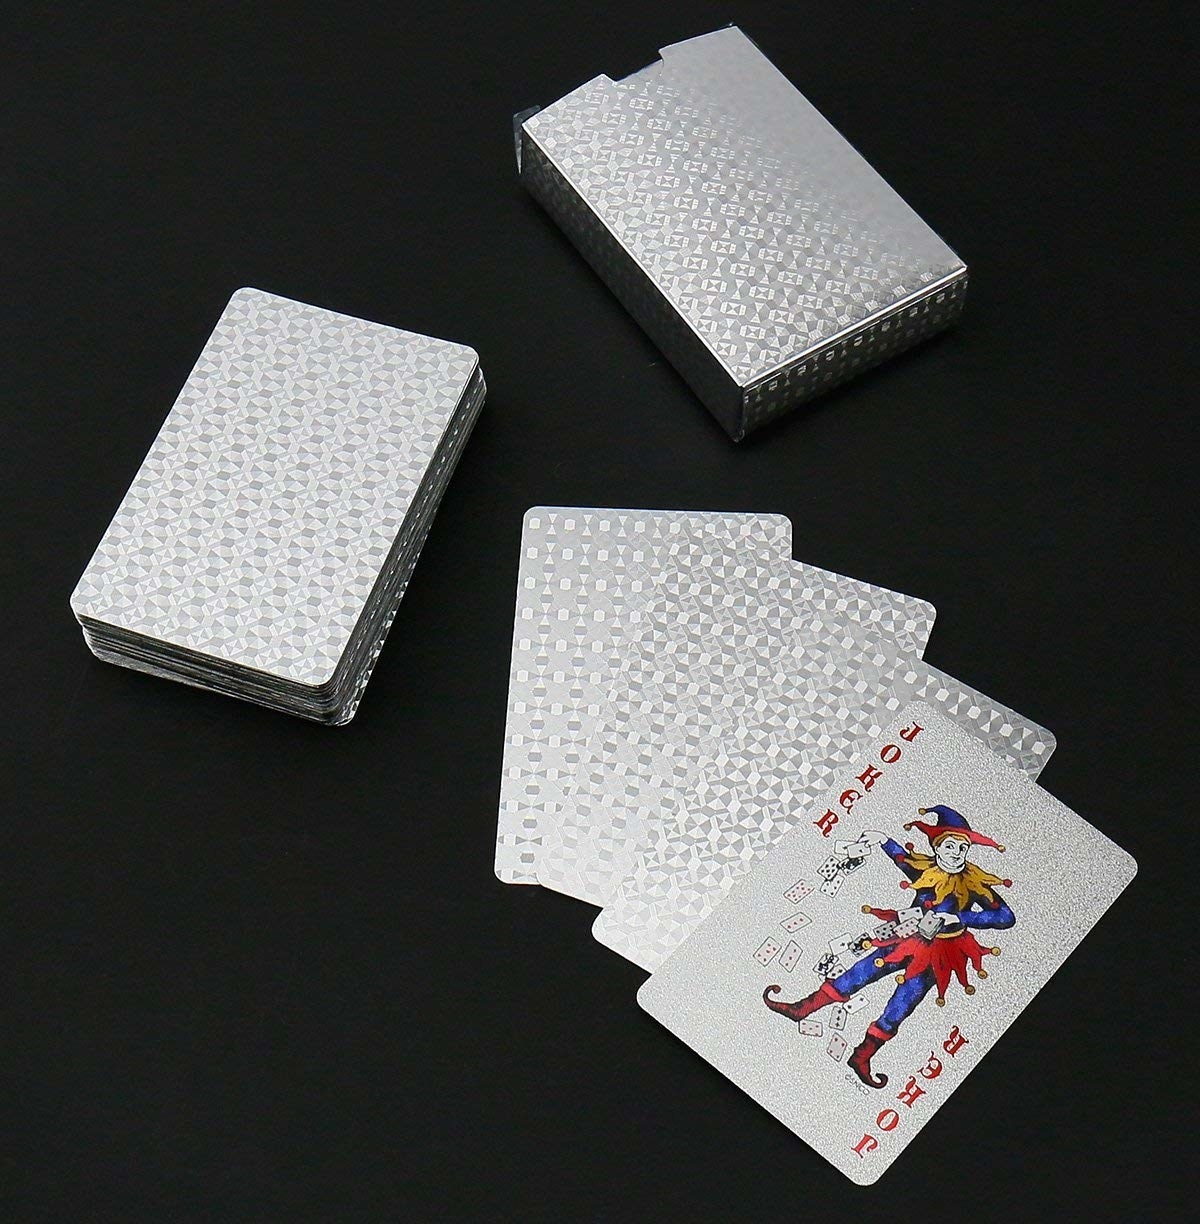 The cards with a patterned metallic design